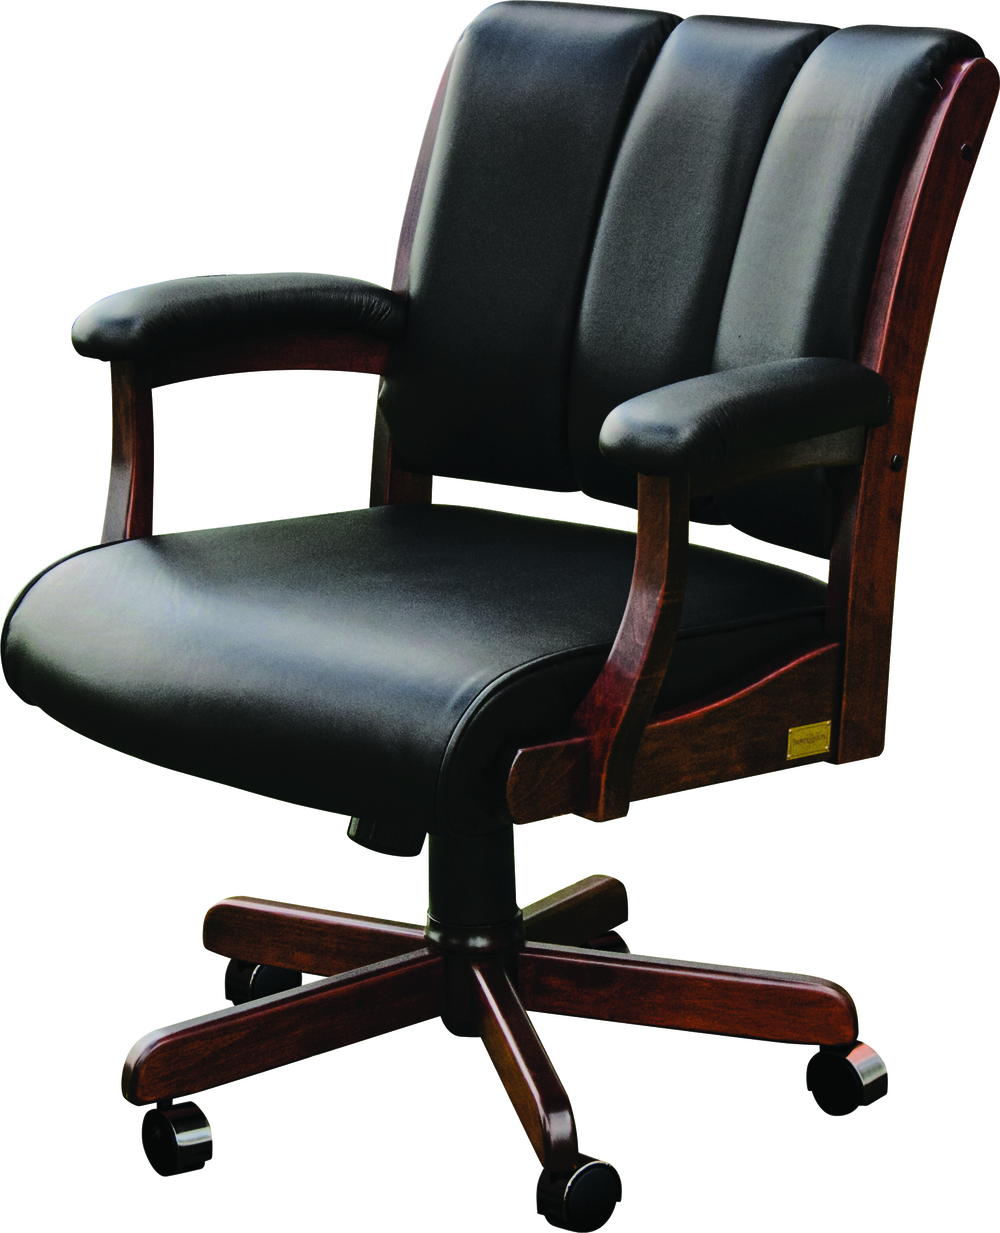 Edelweiss Arm Chair with gas lift